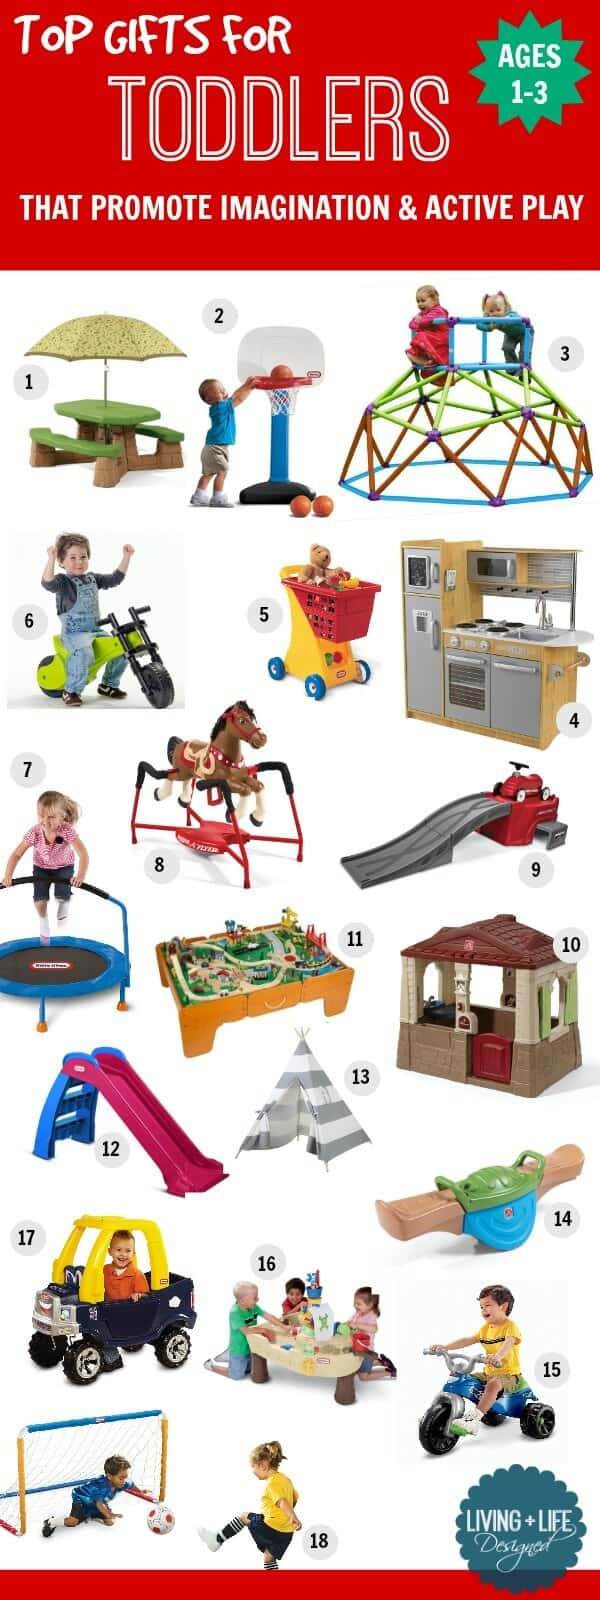 Toys For Active Toddlers : Gifts for toddlers years old that promote imagination